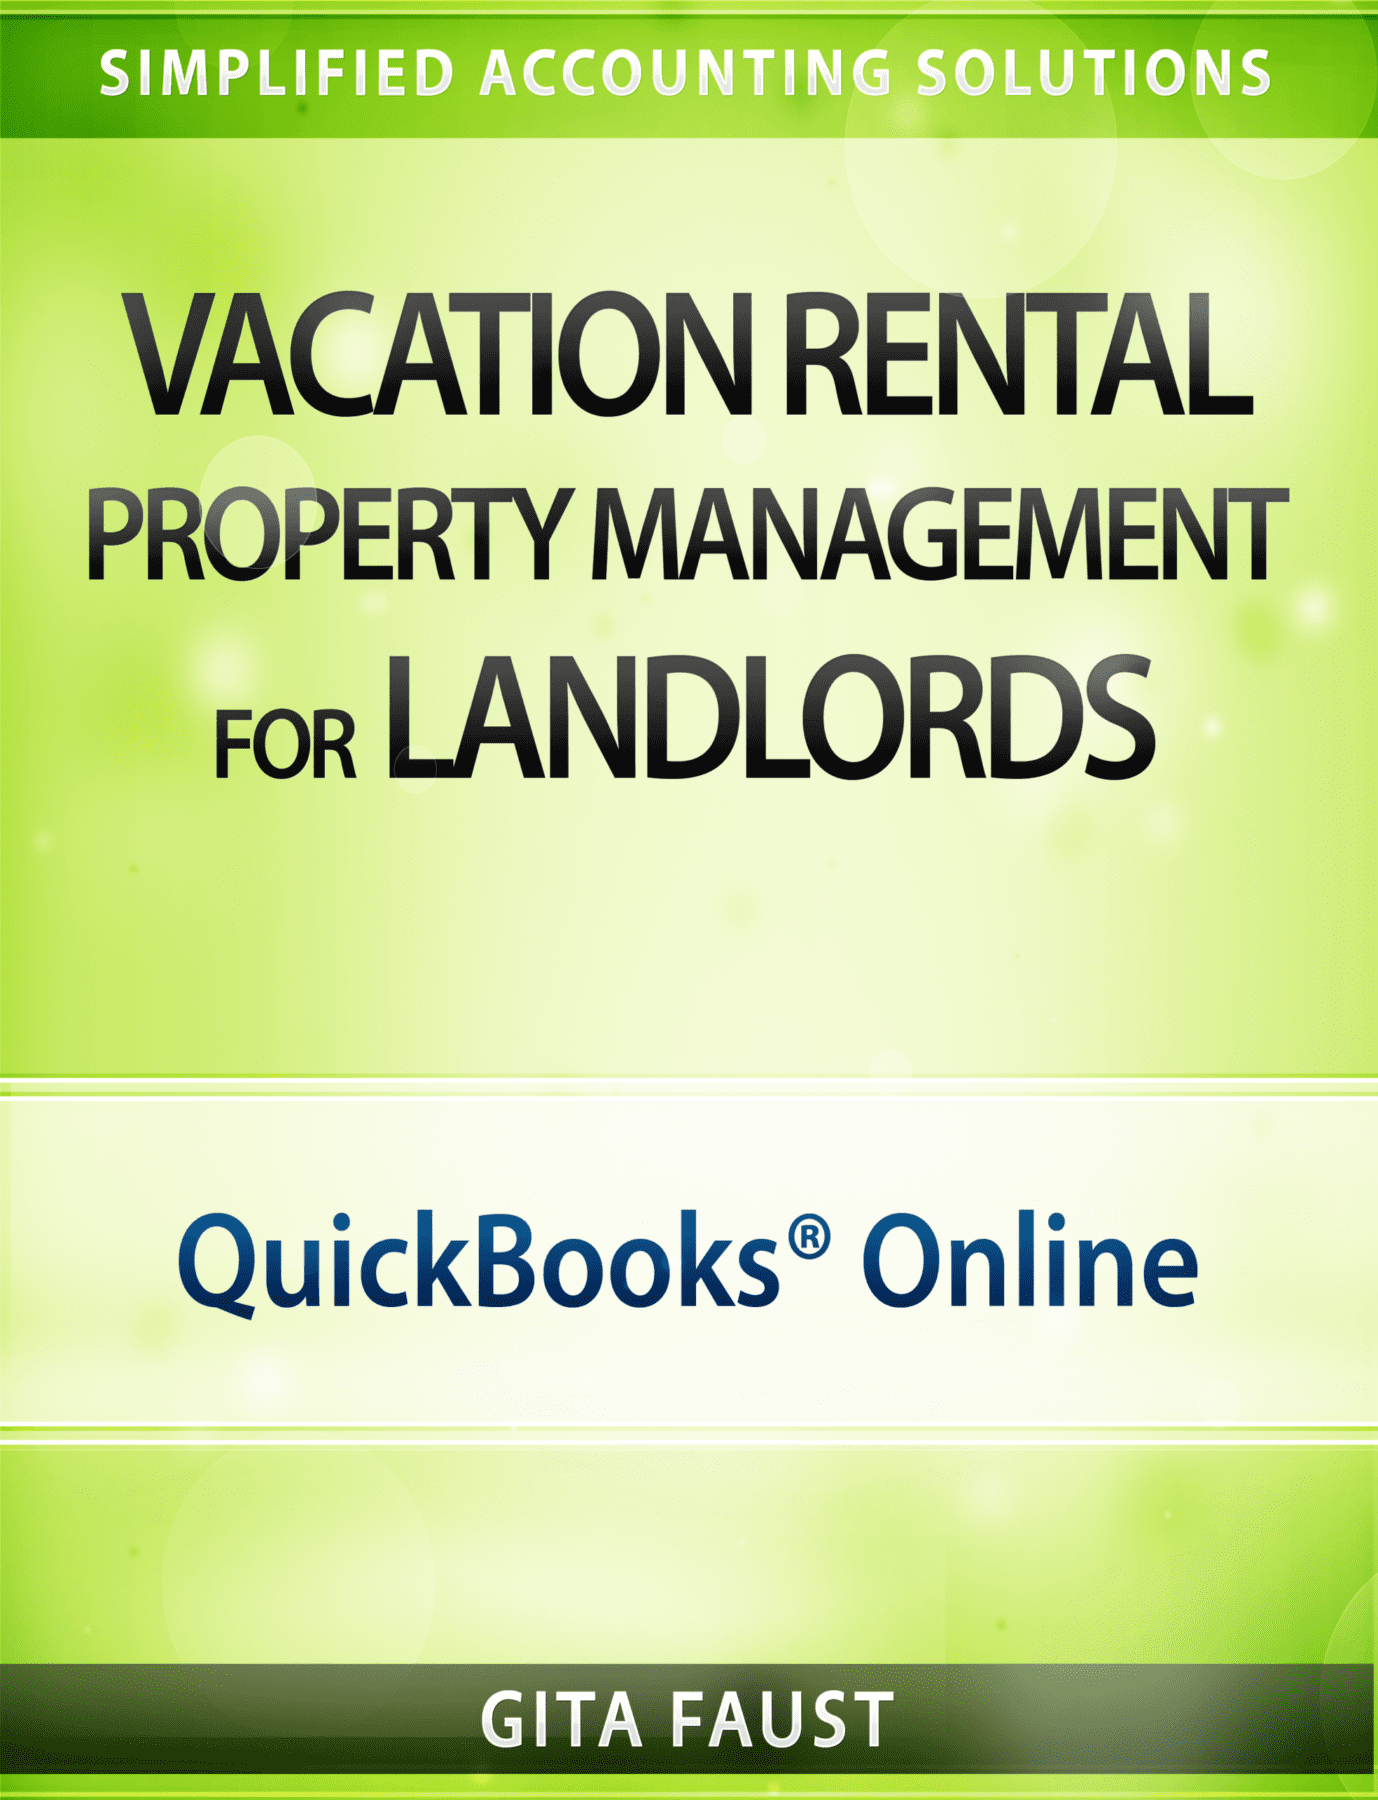 QuickBooks Online for Vacation Rentals